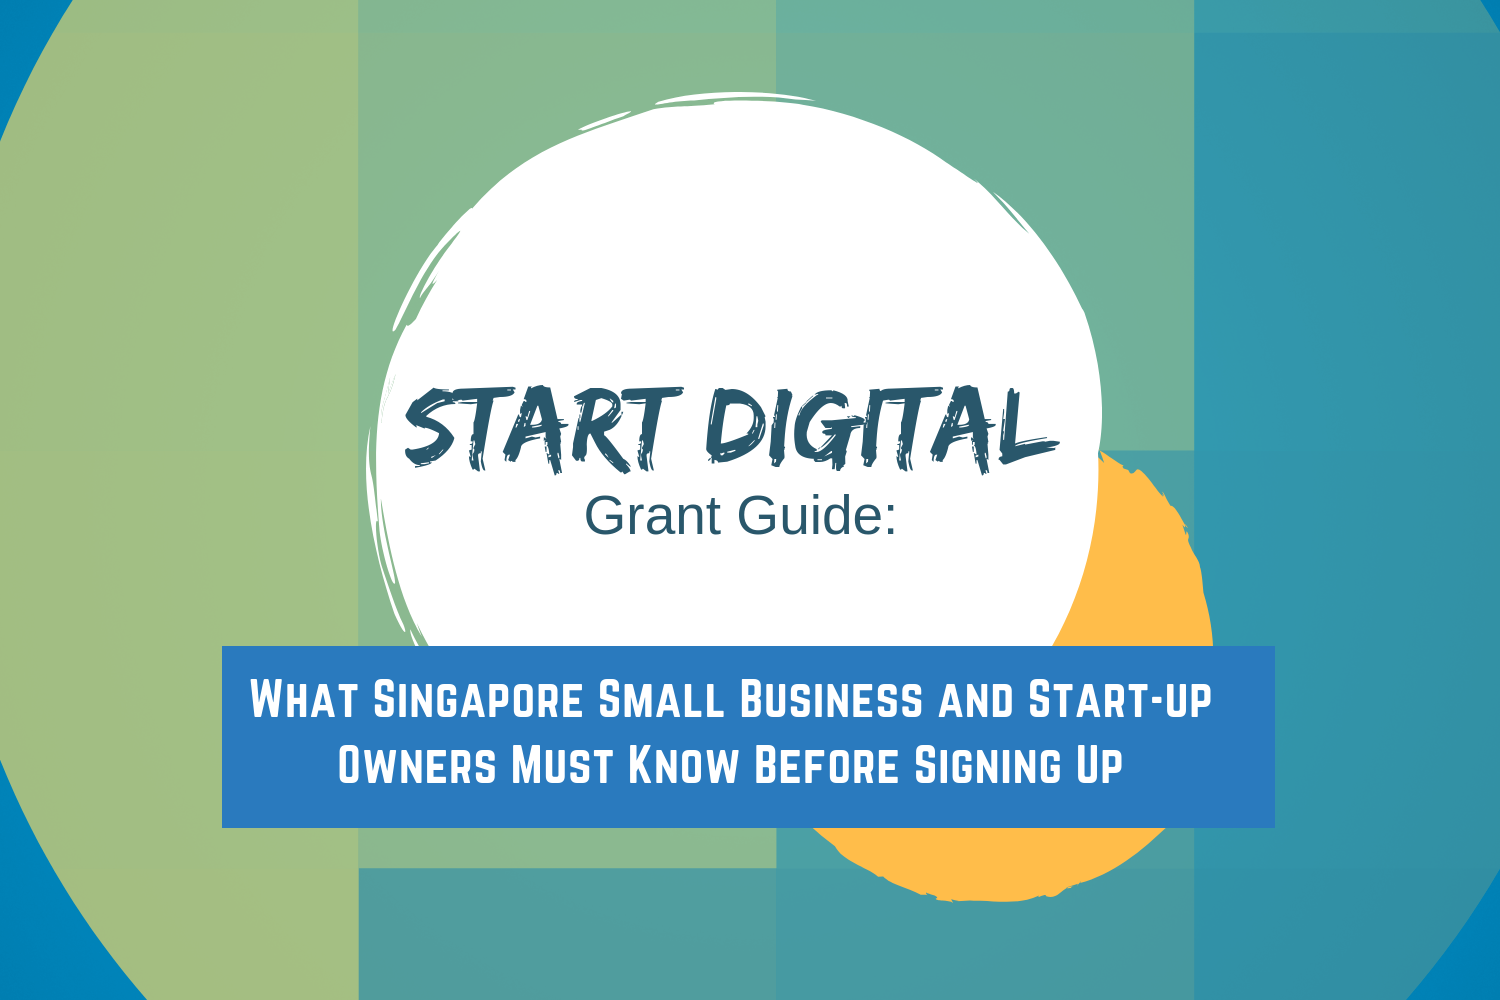 Start Digital Grant Guide: What Singapore Small Business and Start-up Owners Must Know Before Signing Up